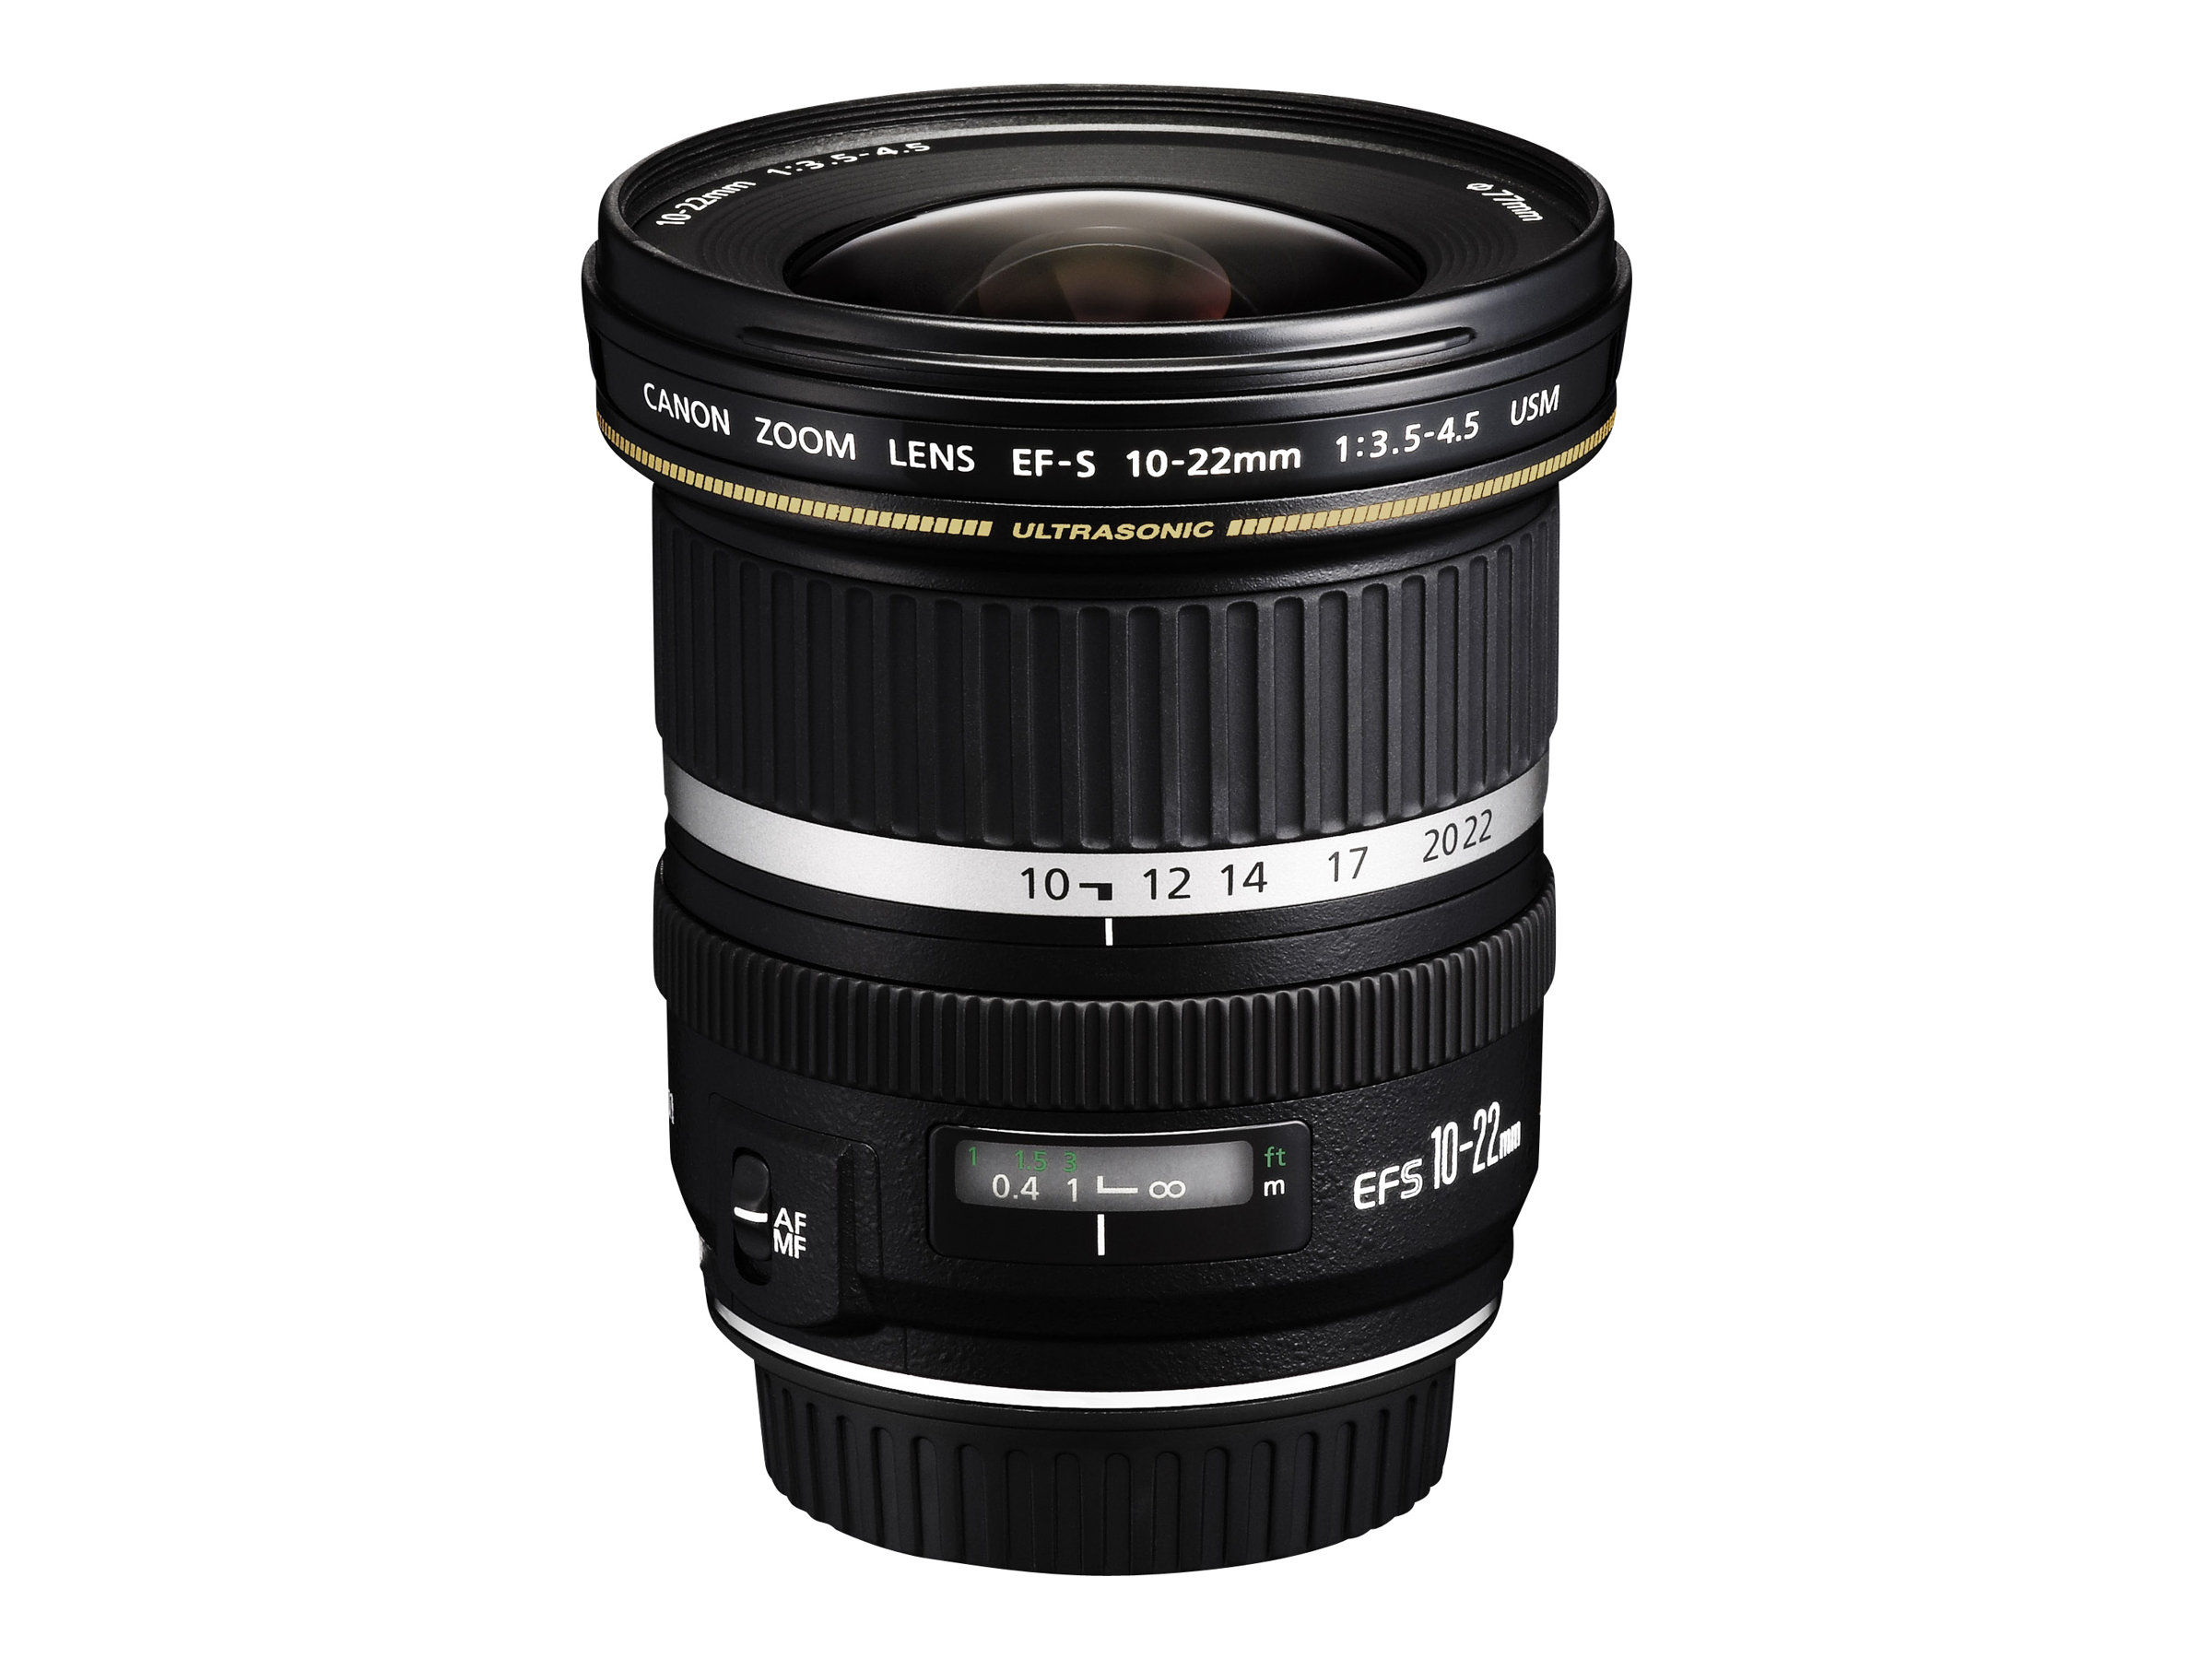 Canon EF-S - Weitwinkel-Zoom-Objektiv - 10 mm - 22 mm - f/3.5-4.5 USM - Canon EF-S